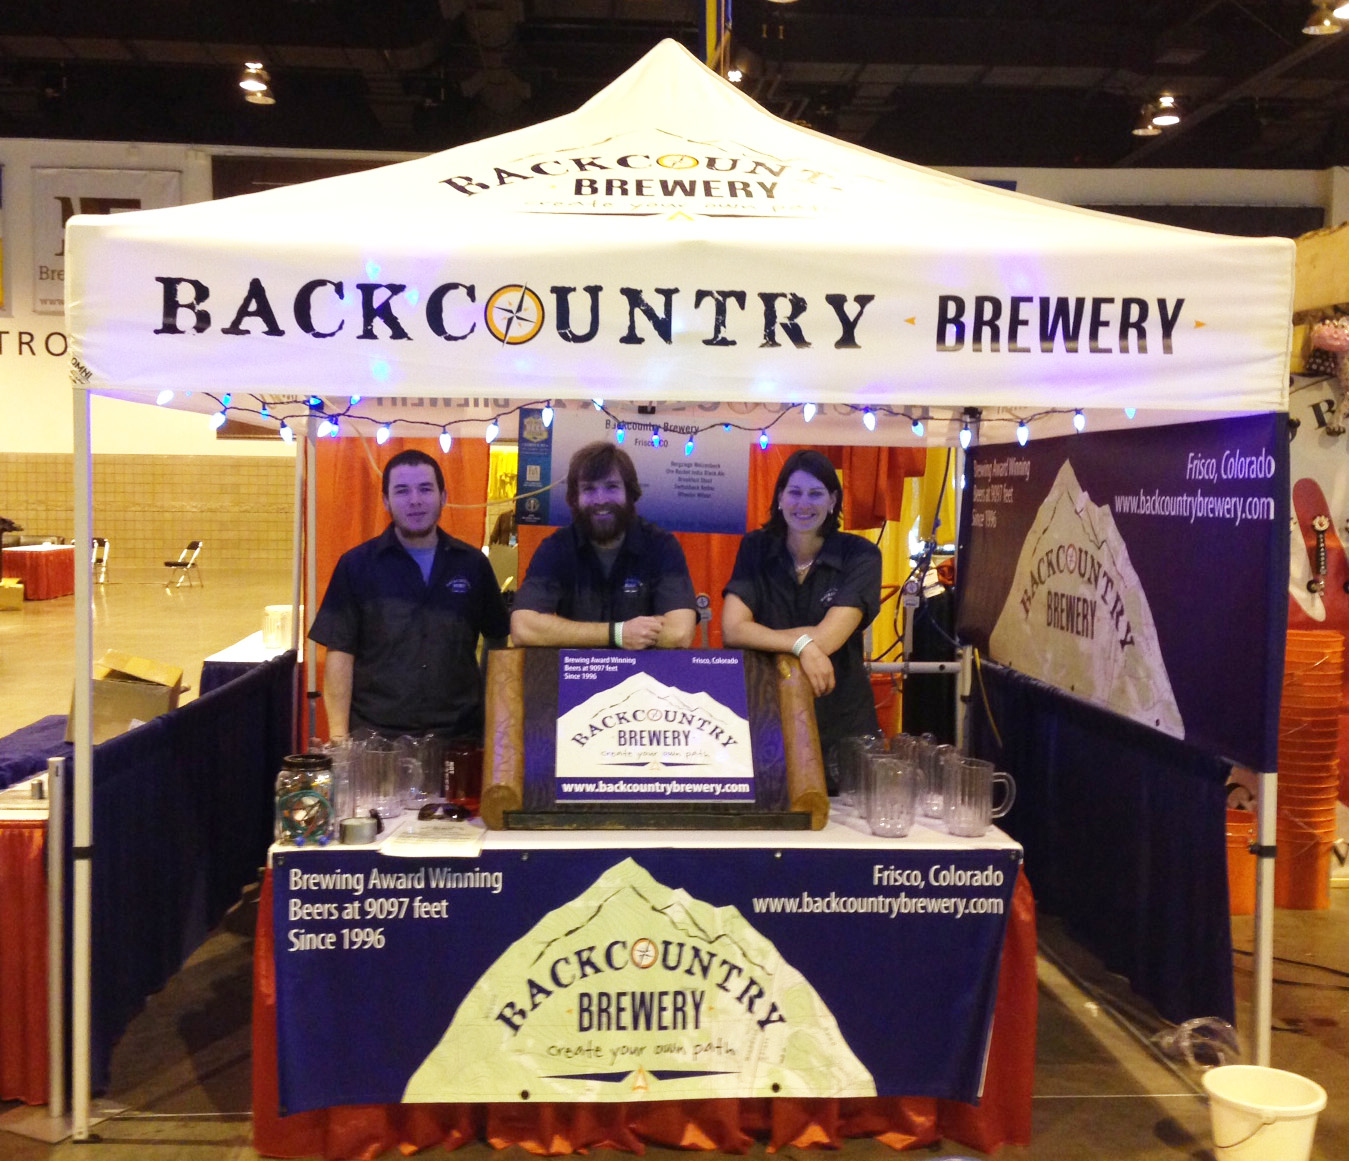 Backcountry at GABF